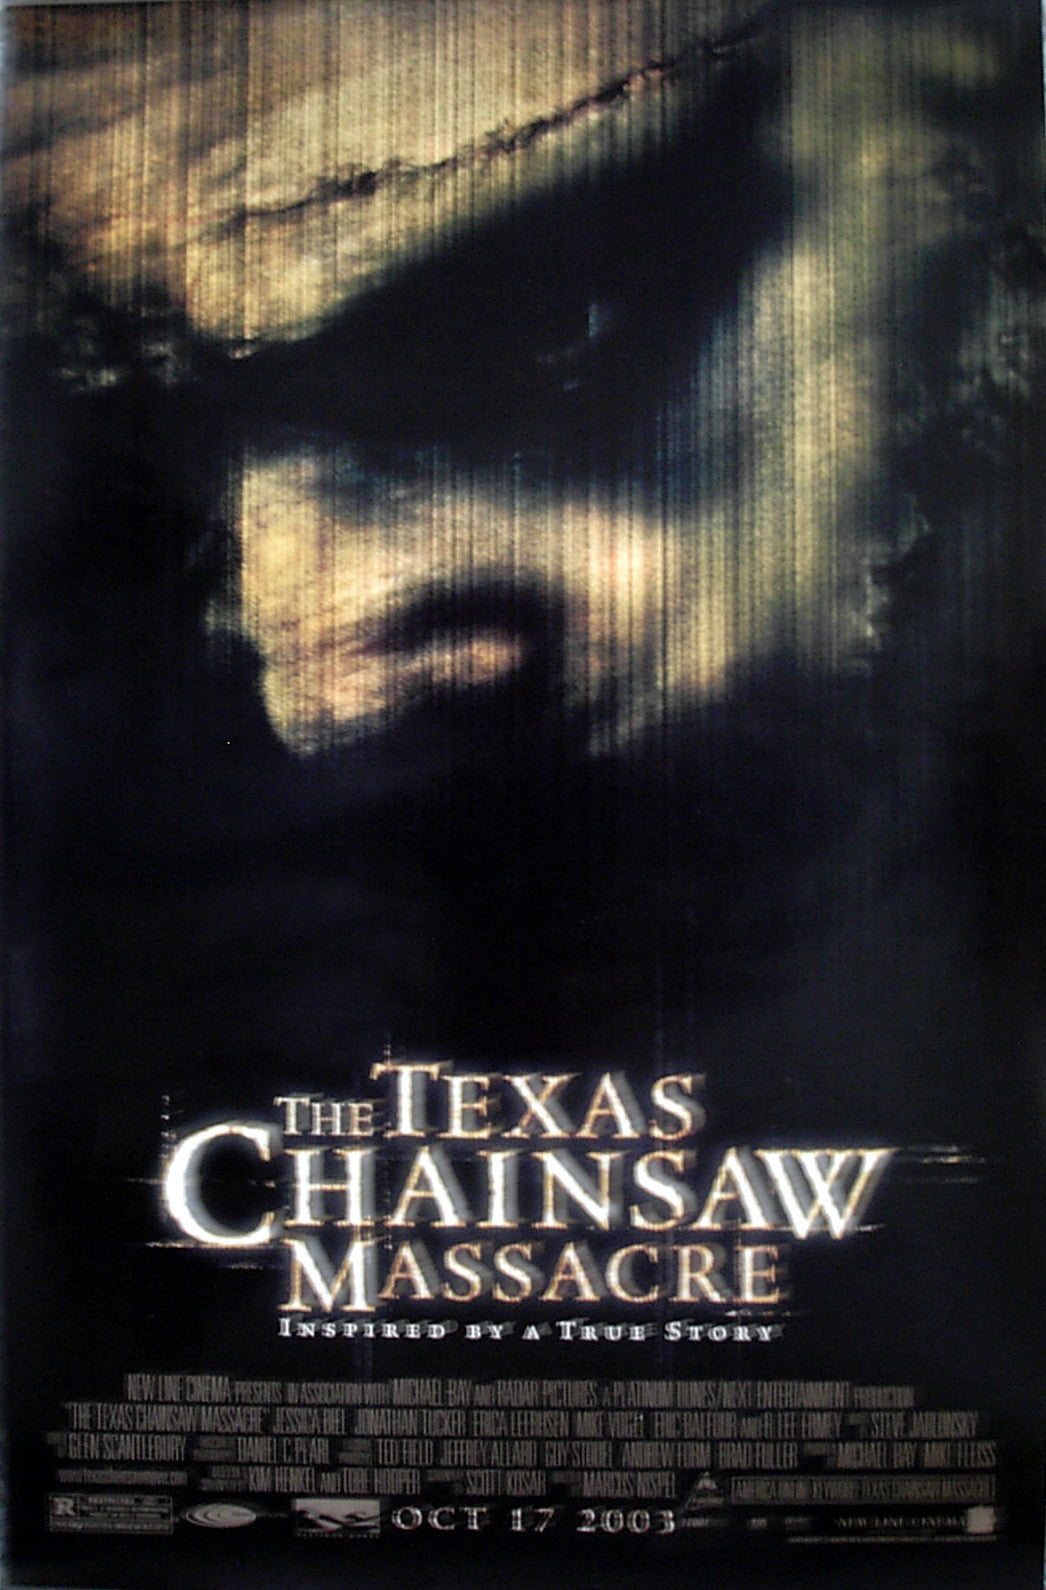 TEXAS CHAINSAW MASSACRE, THE - US small promo poster